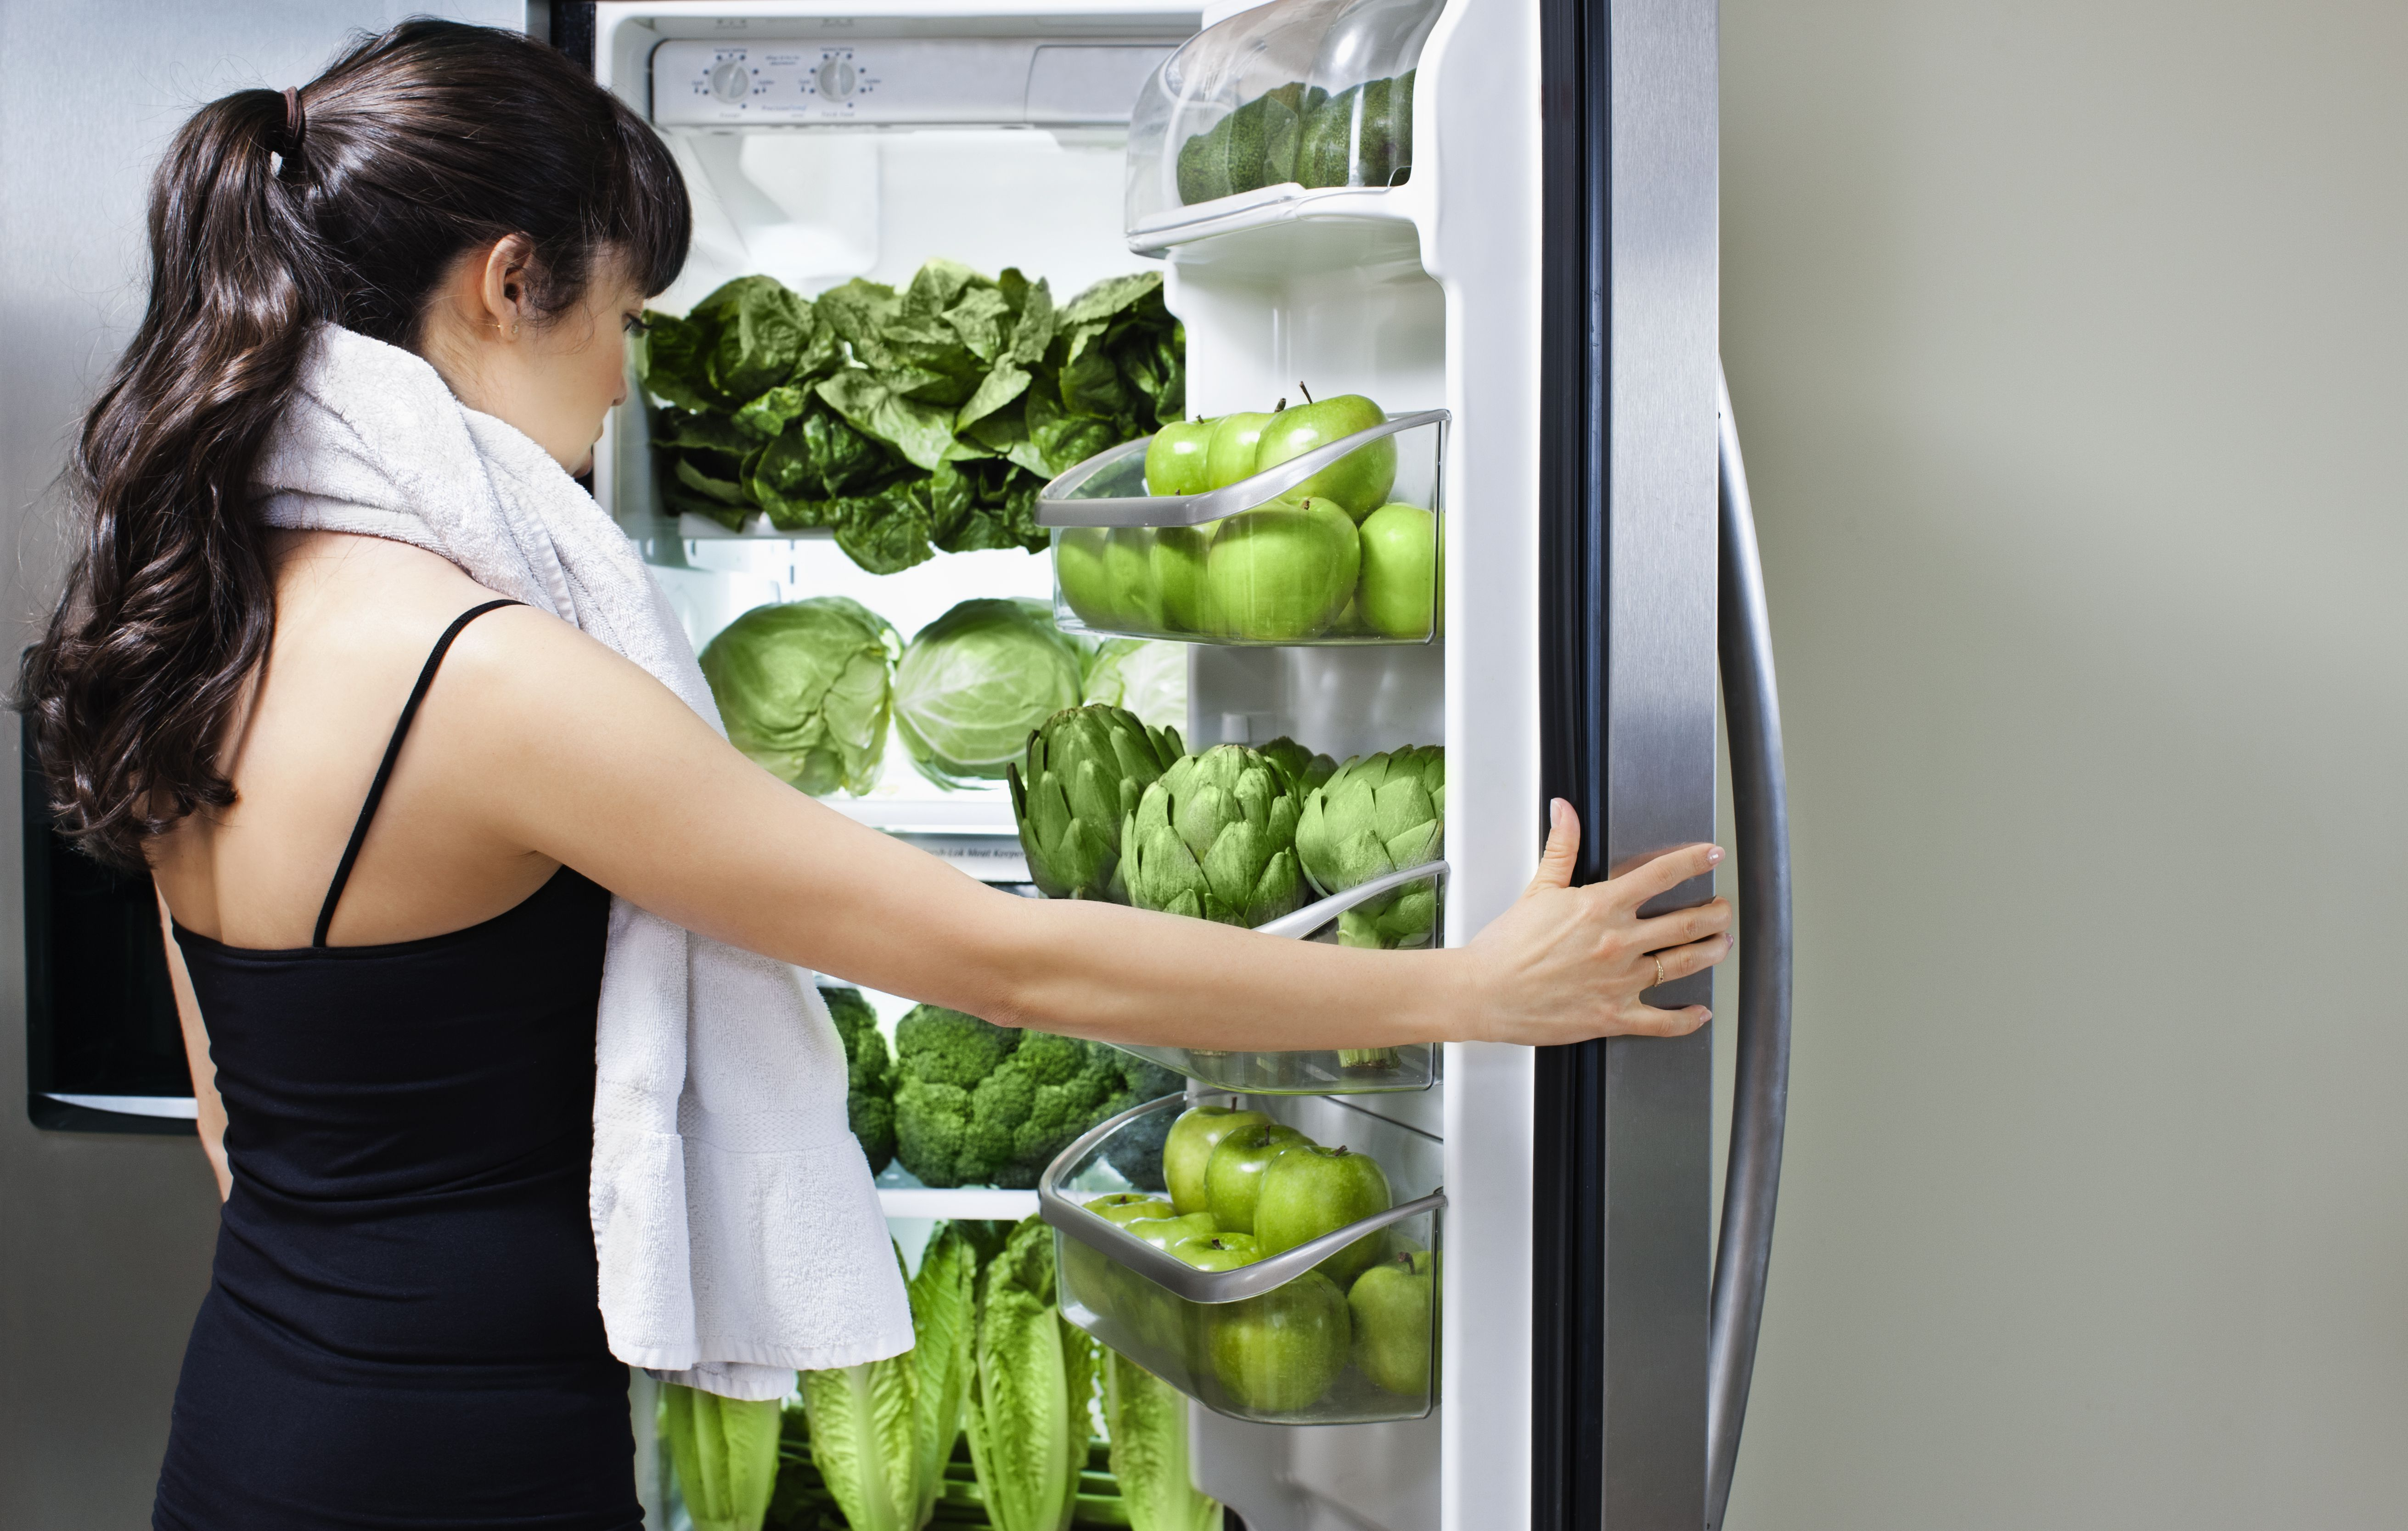 types of food to eat to lose weight and gain muscle